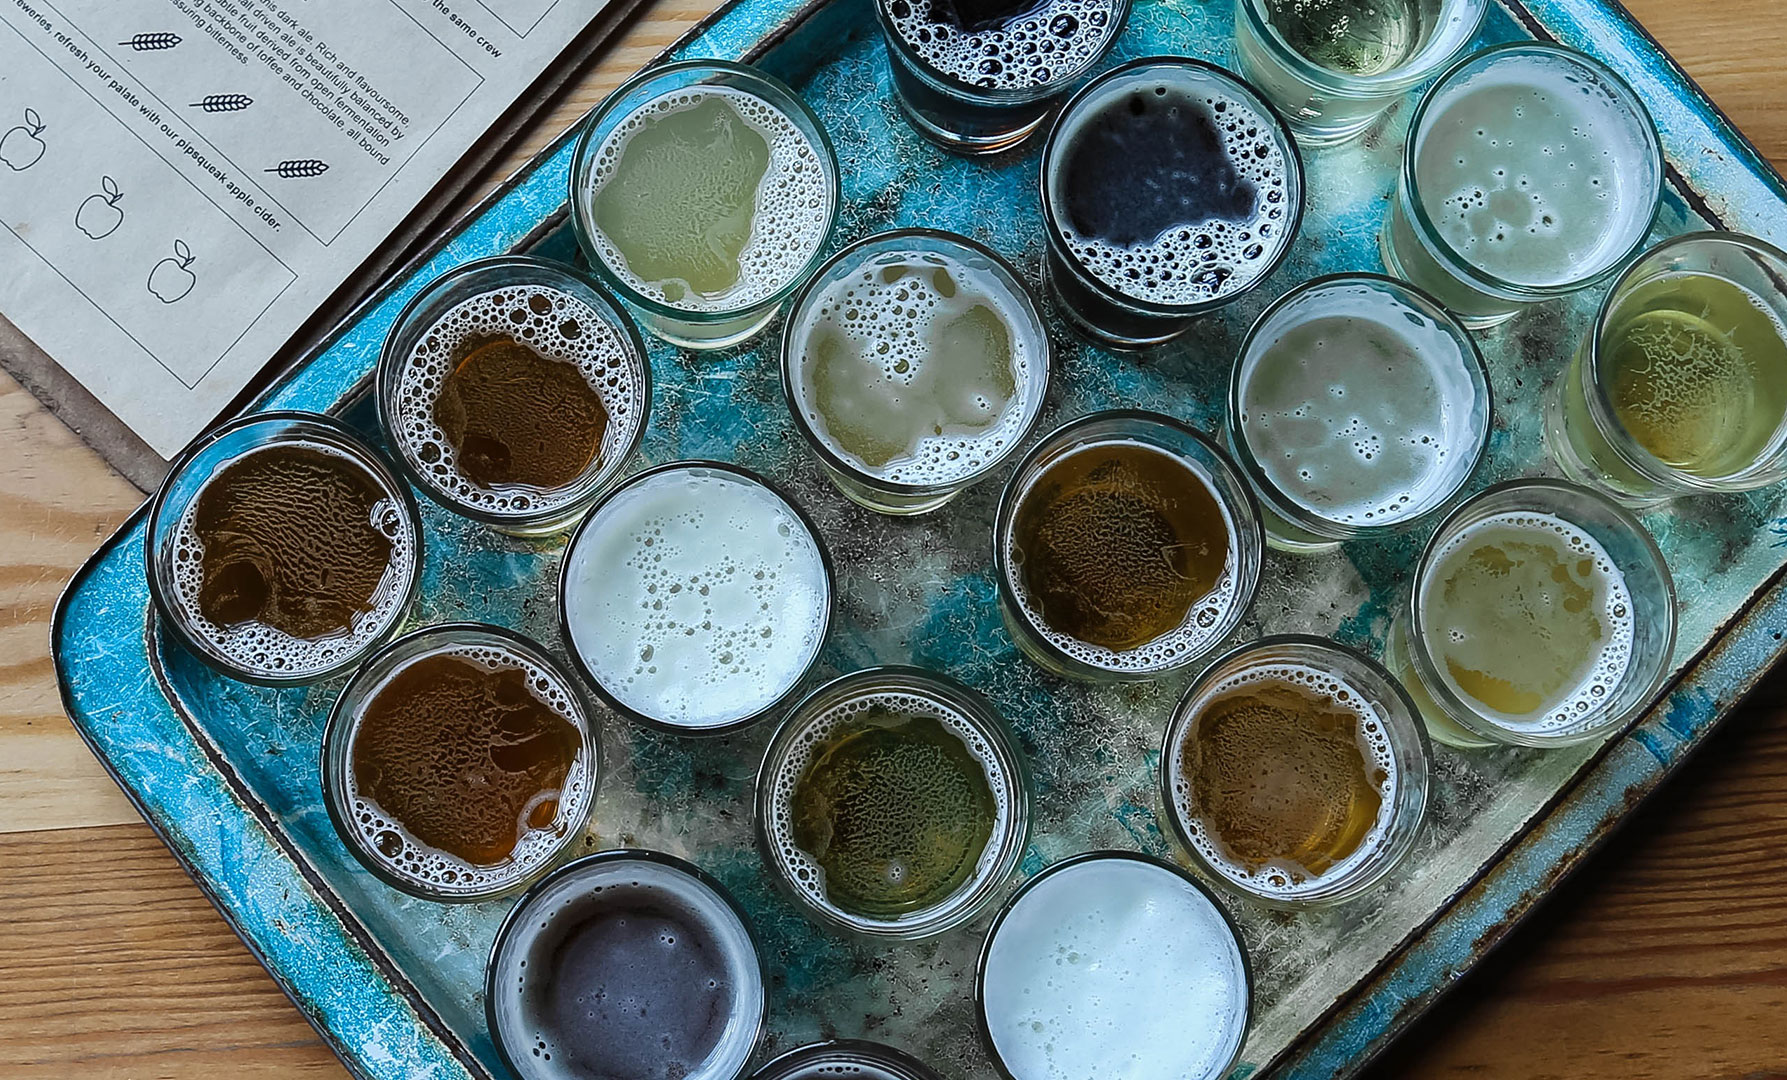 Explore Seattle: 5 Must-Drink Breweries in the Seattle Area